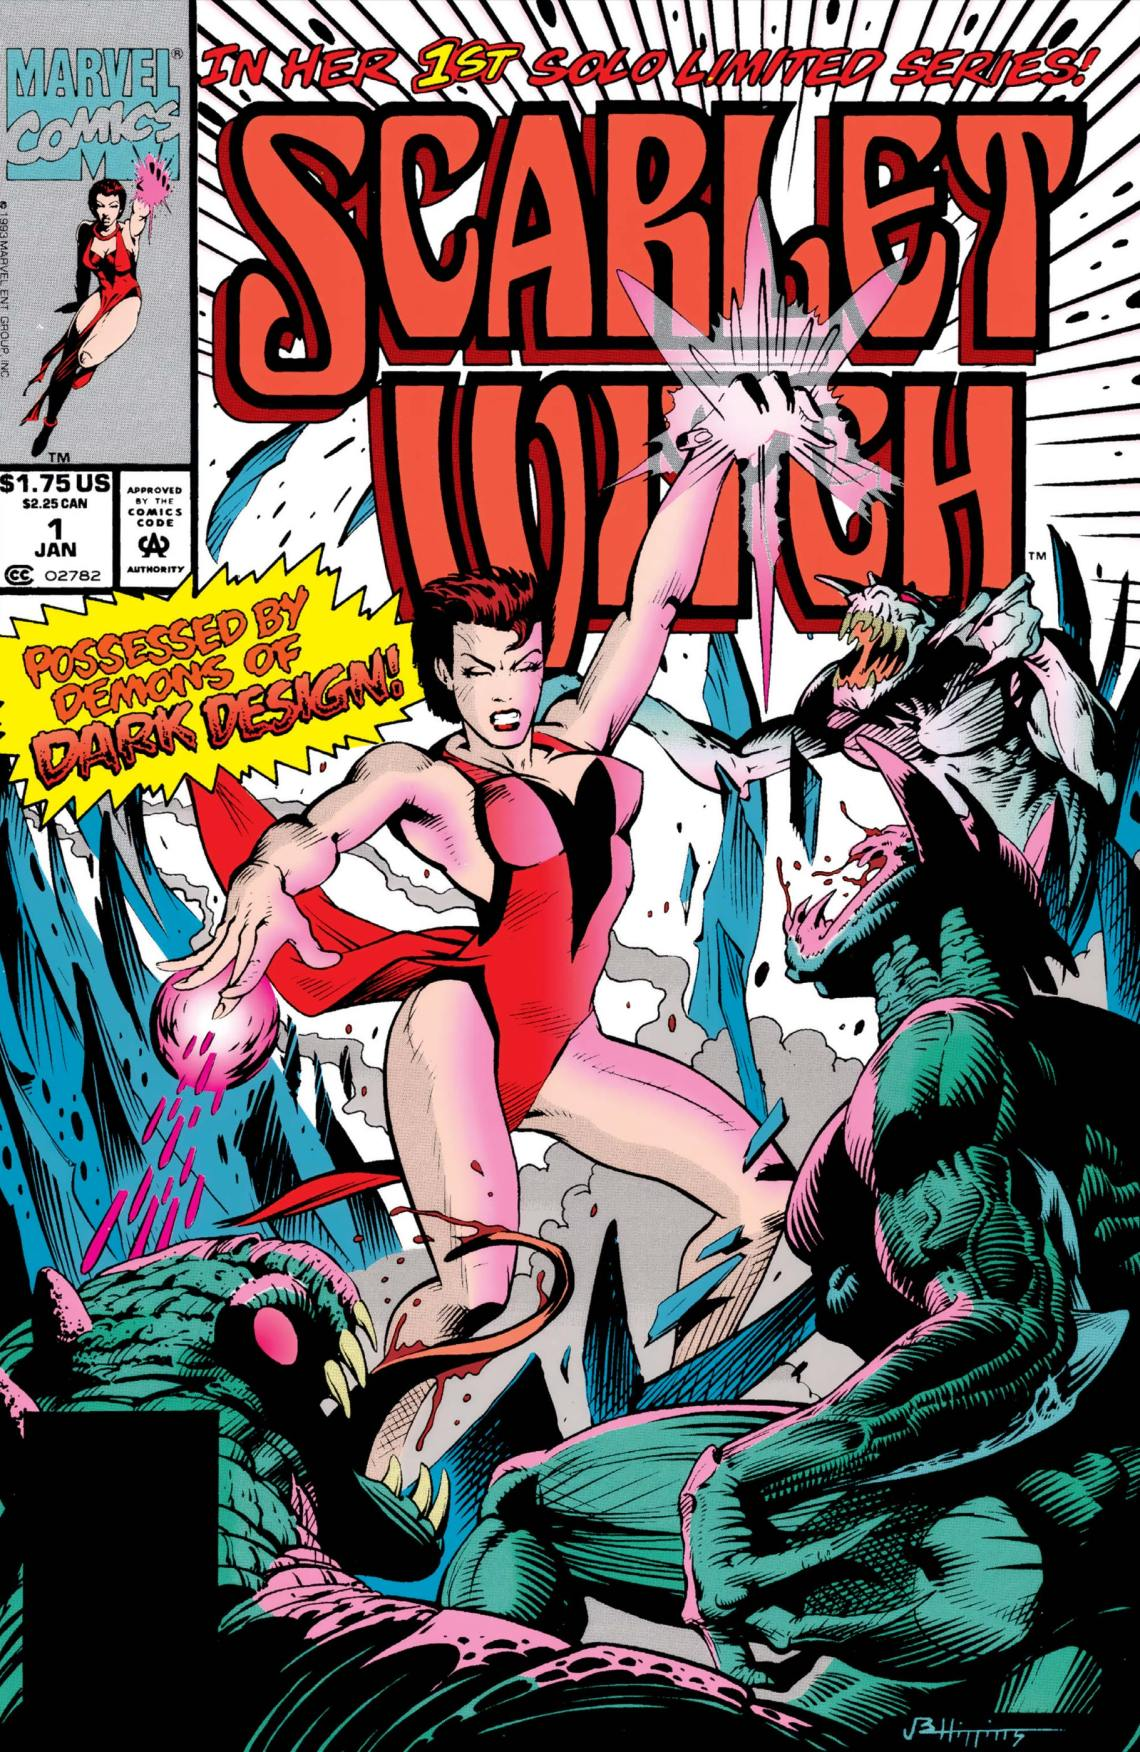 Scarlet Witch (1994) #1 | Comic Issues | Marvel